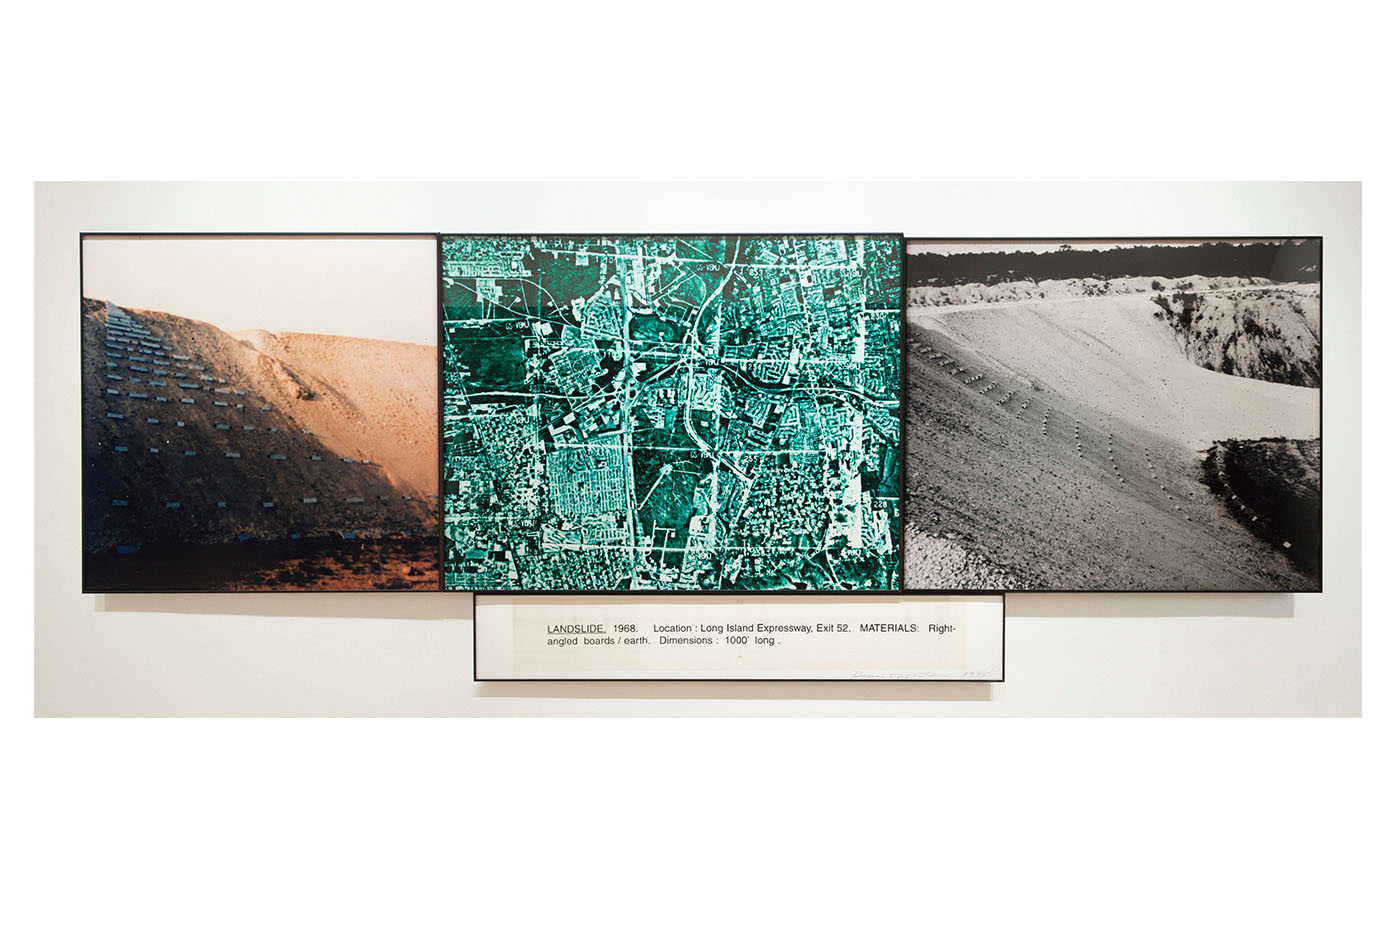 Landslide , 1968 Color photograph and text |4 panels: 50 x 139 inches | HG4907